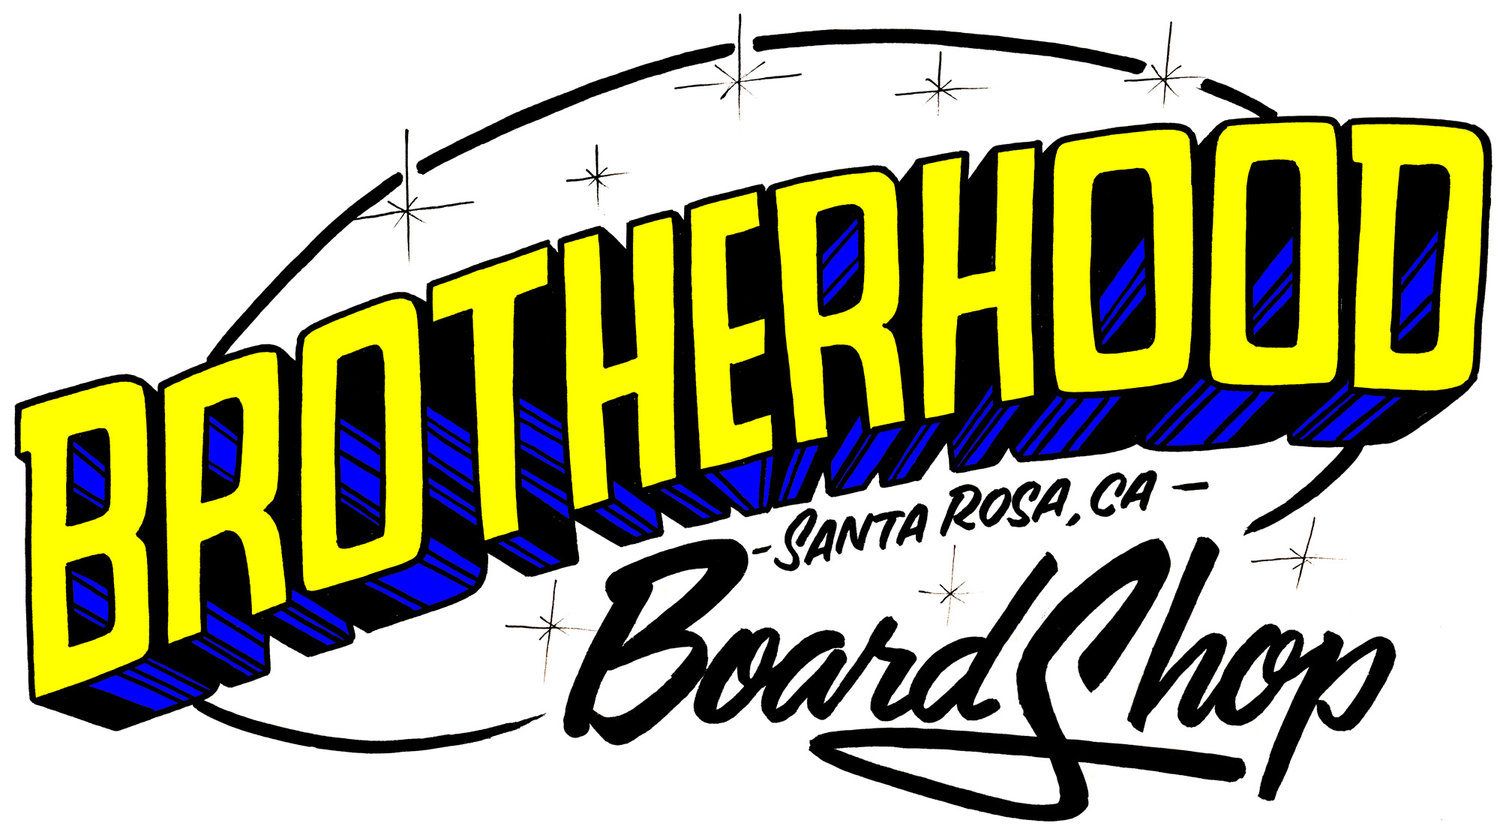 Brotherhood Board Shop